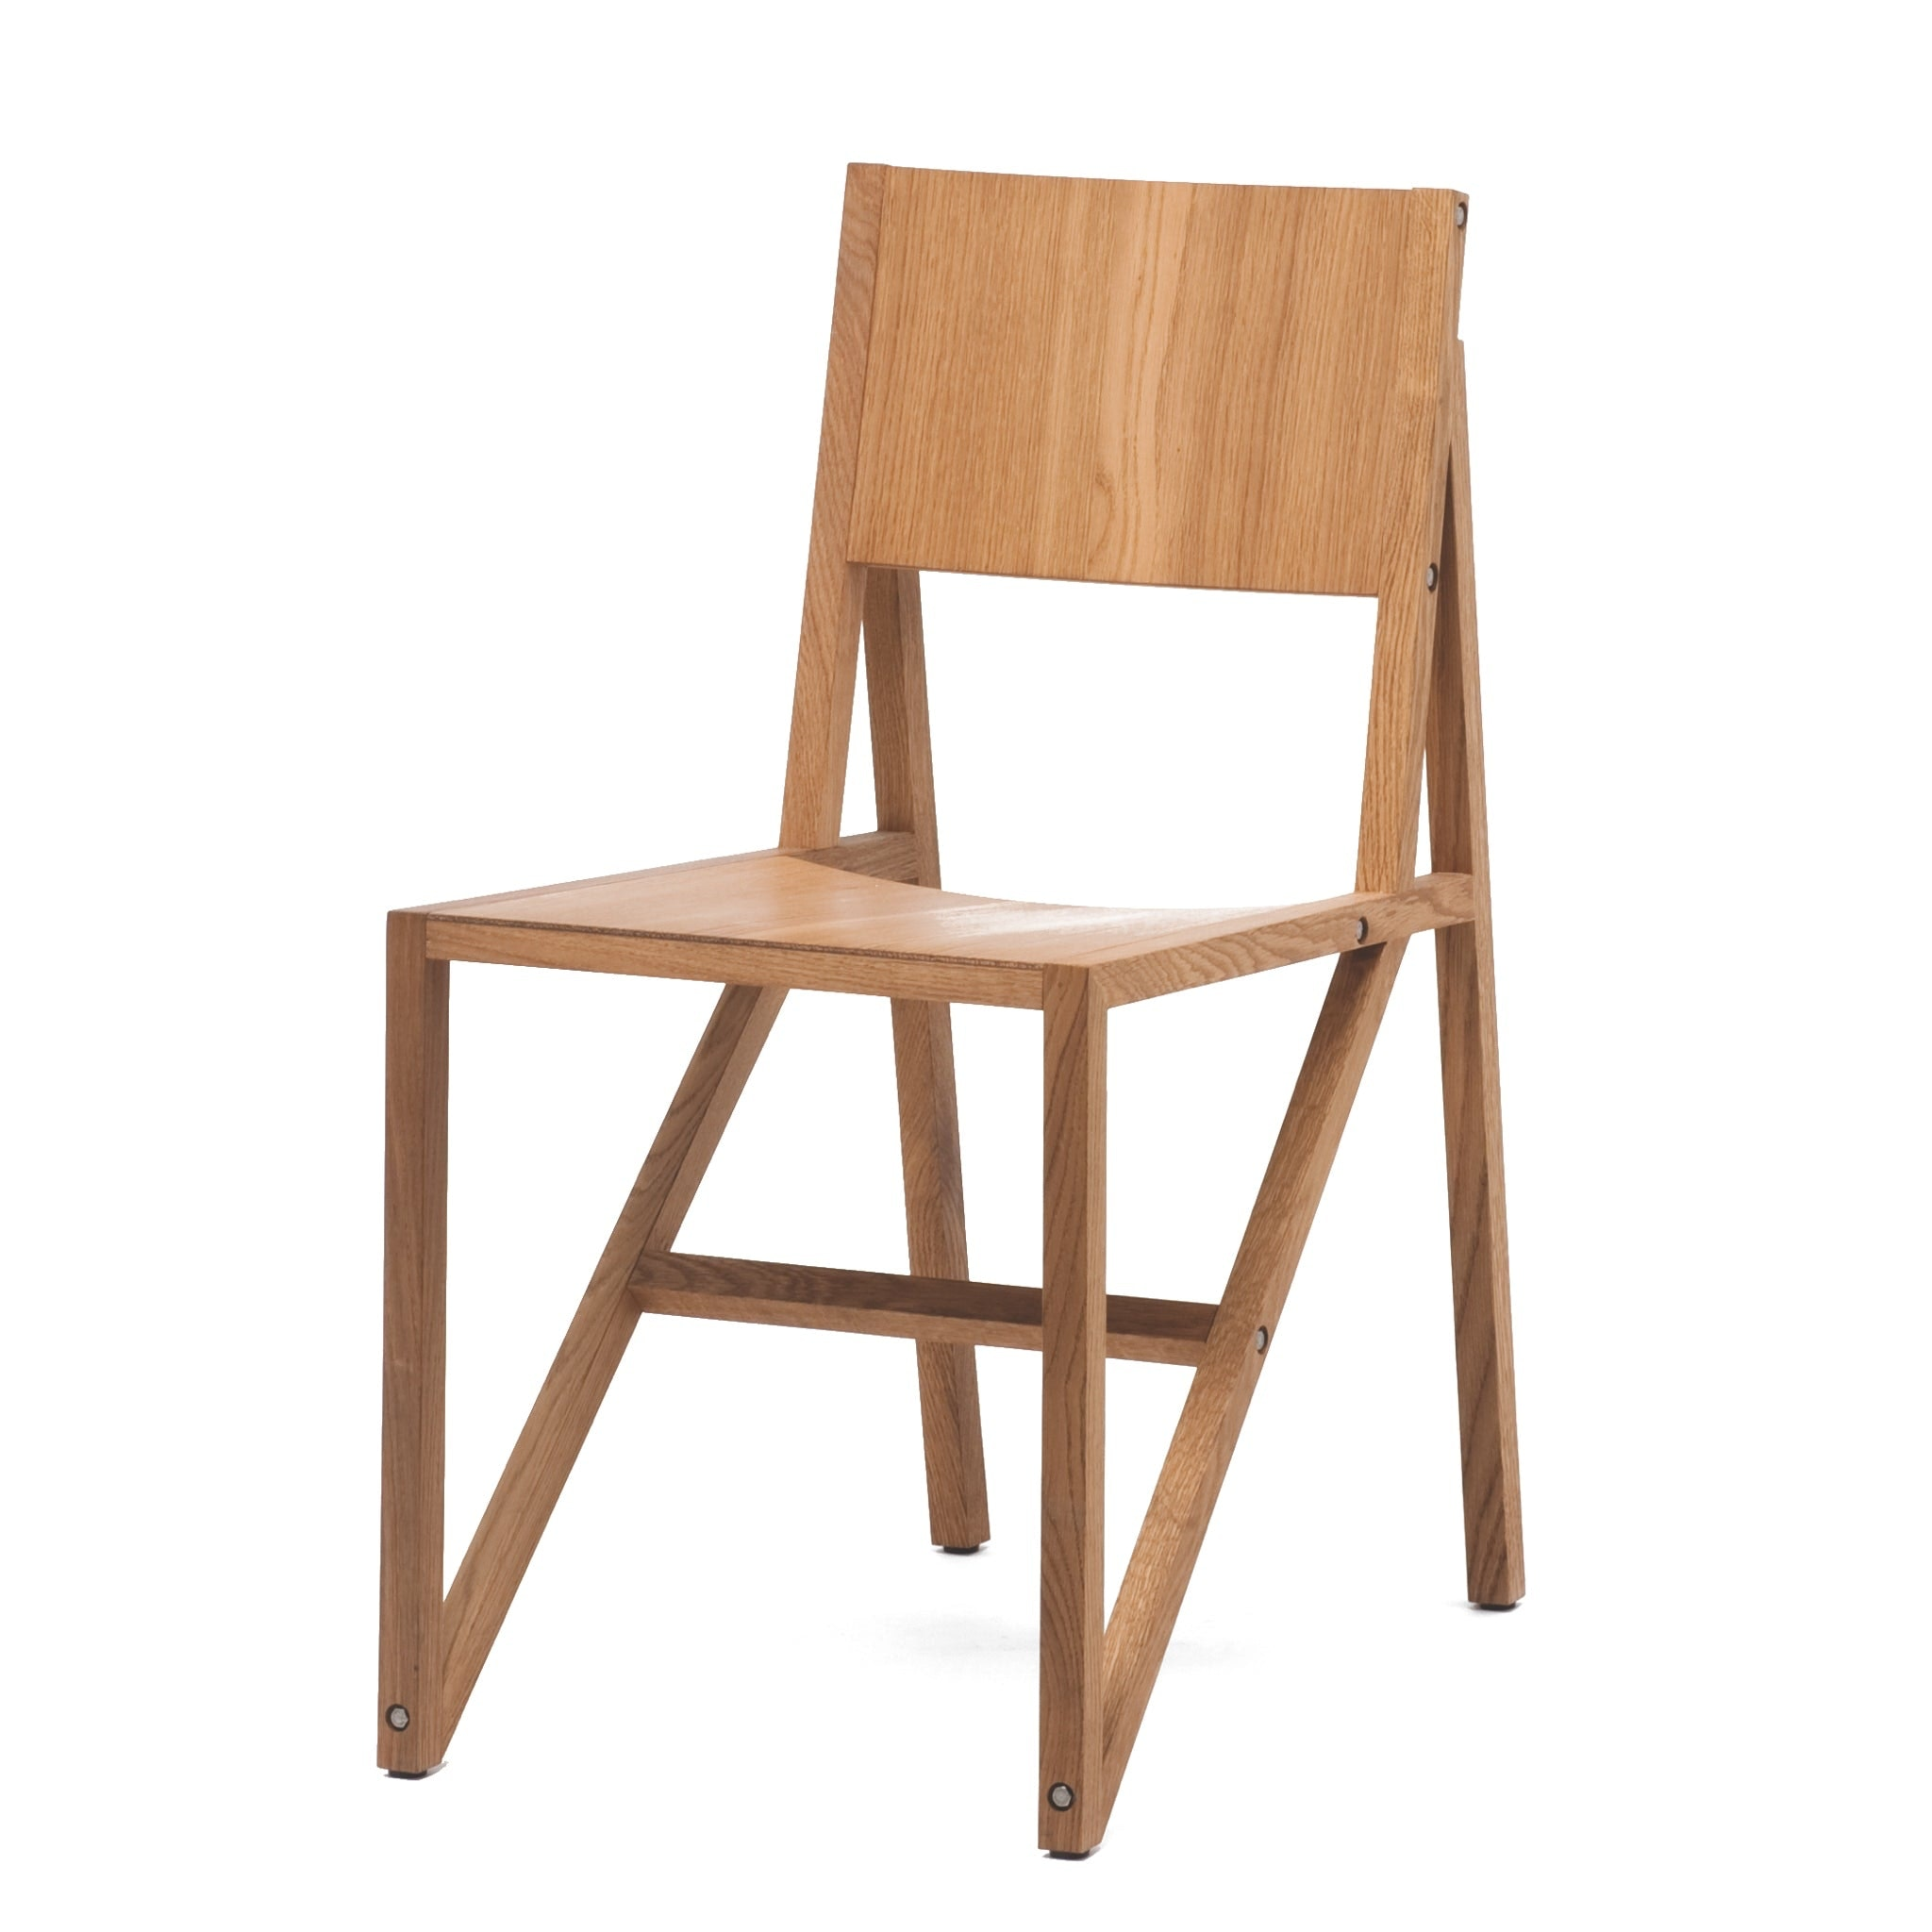 Frame chair by Established & Sons